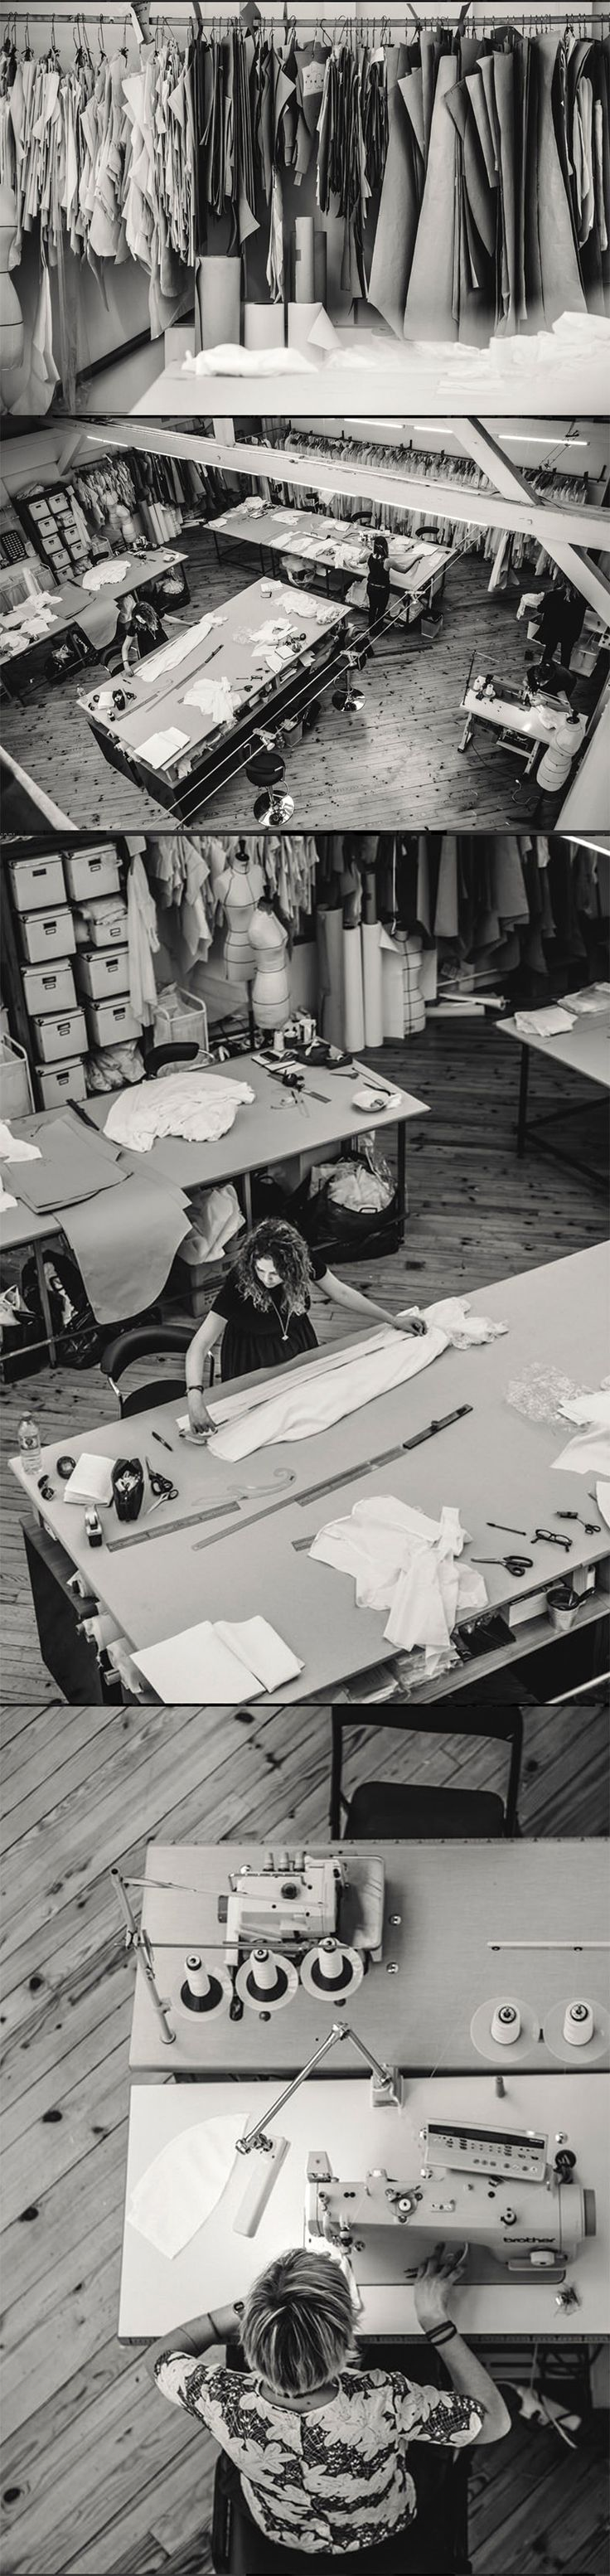 Laure de Sagazan  #workspace #fashion #atelier                                                                                                                                                                                 More